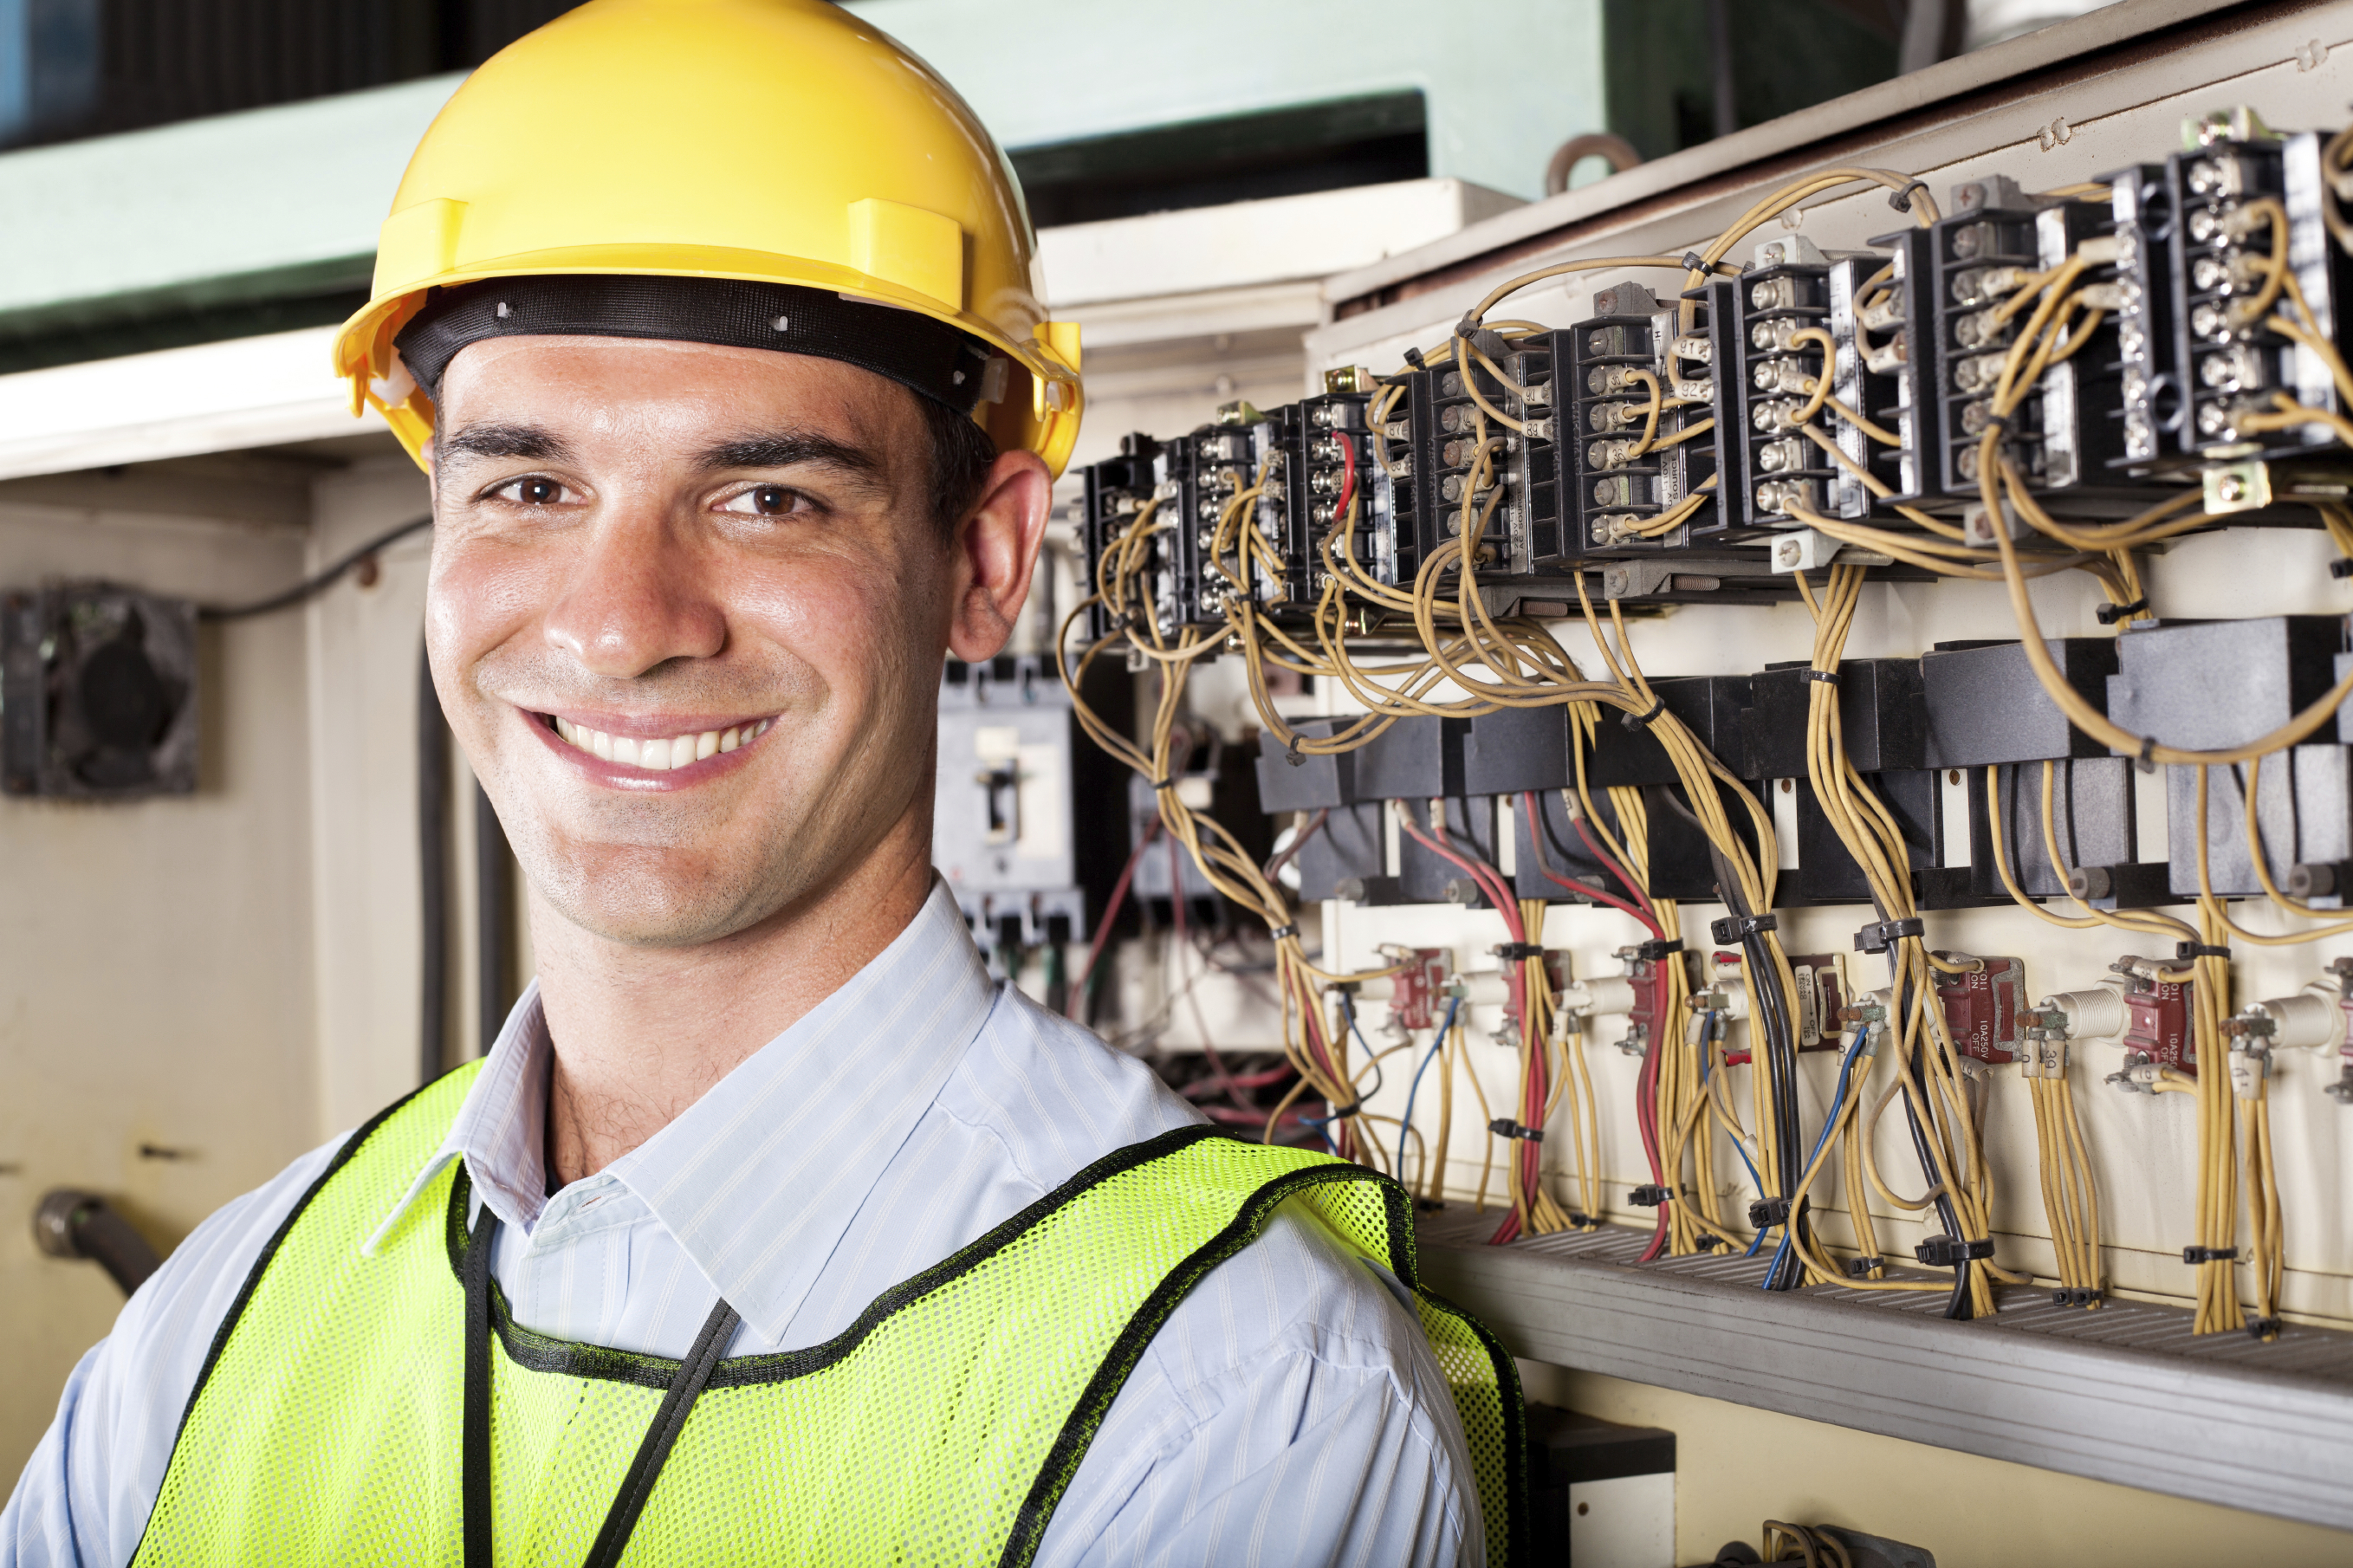 Commercial Electrical Services Wiring Jobs